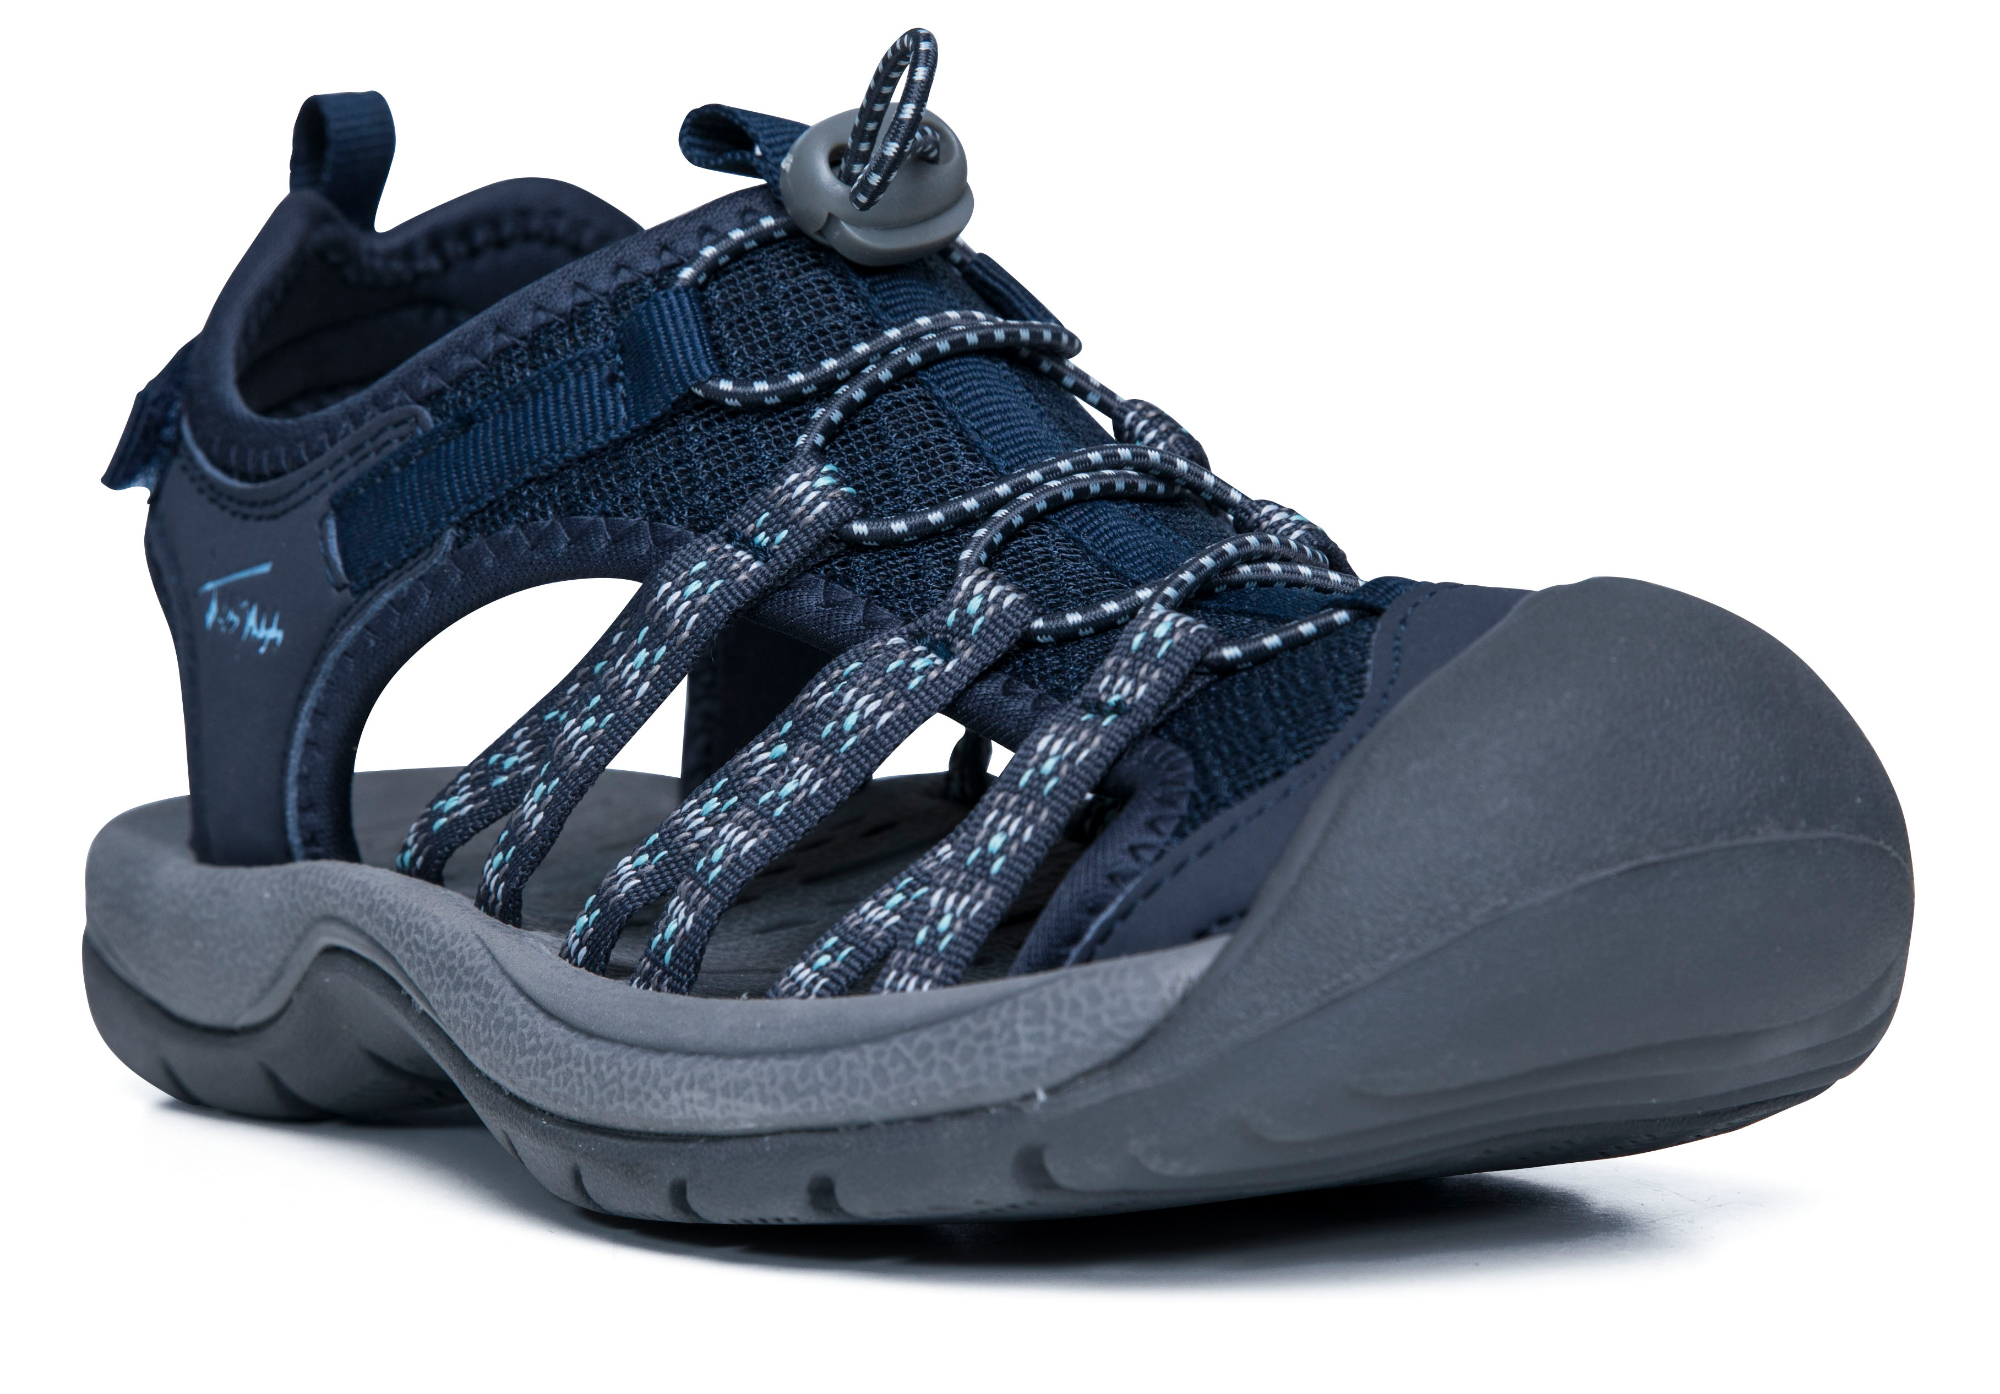 Trespass Brontie - Active sandal - Dame - Navy | Running shoes